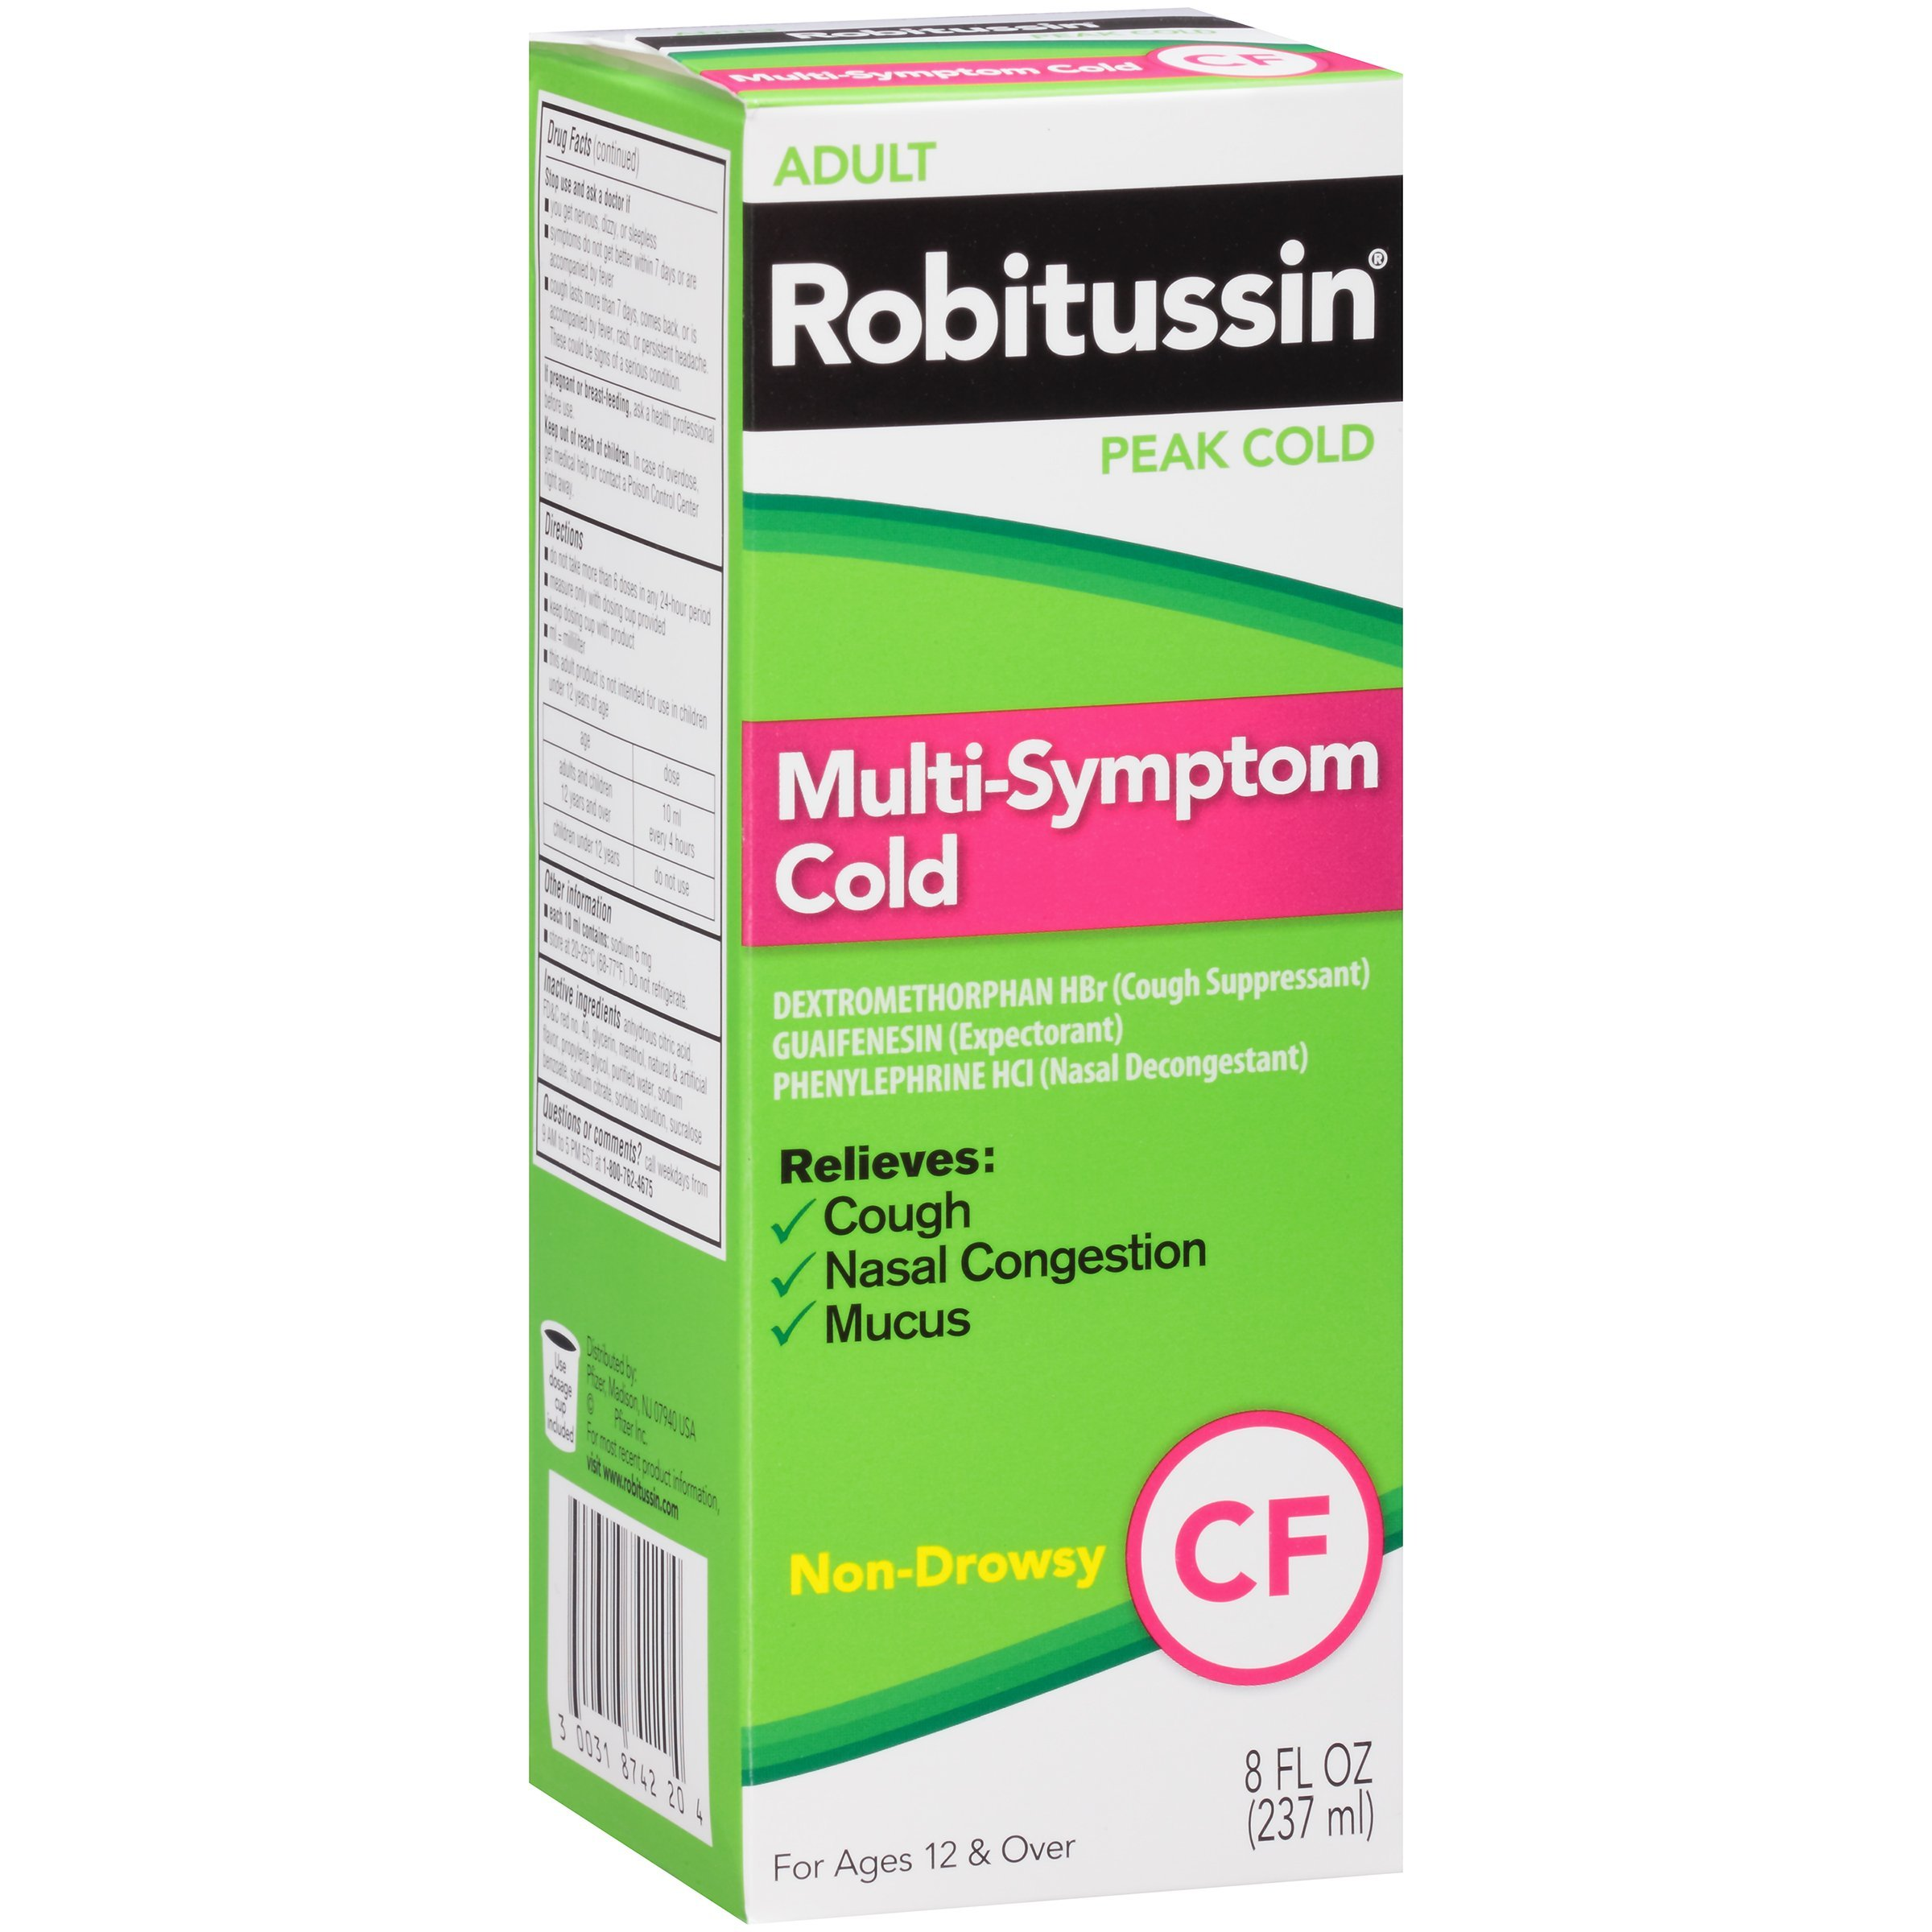 Robitussin Peak Cold CF Multi-Symptom Cold Relief (8 fl. oz. Bottle, Pack of 12) by Robitussin